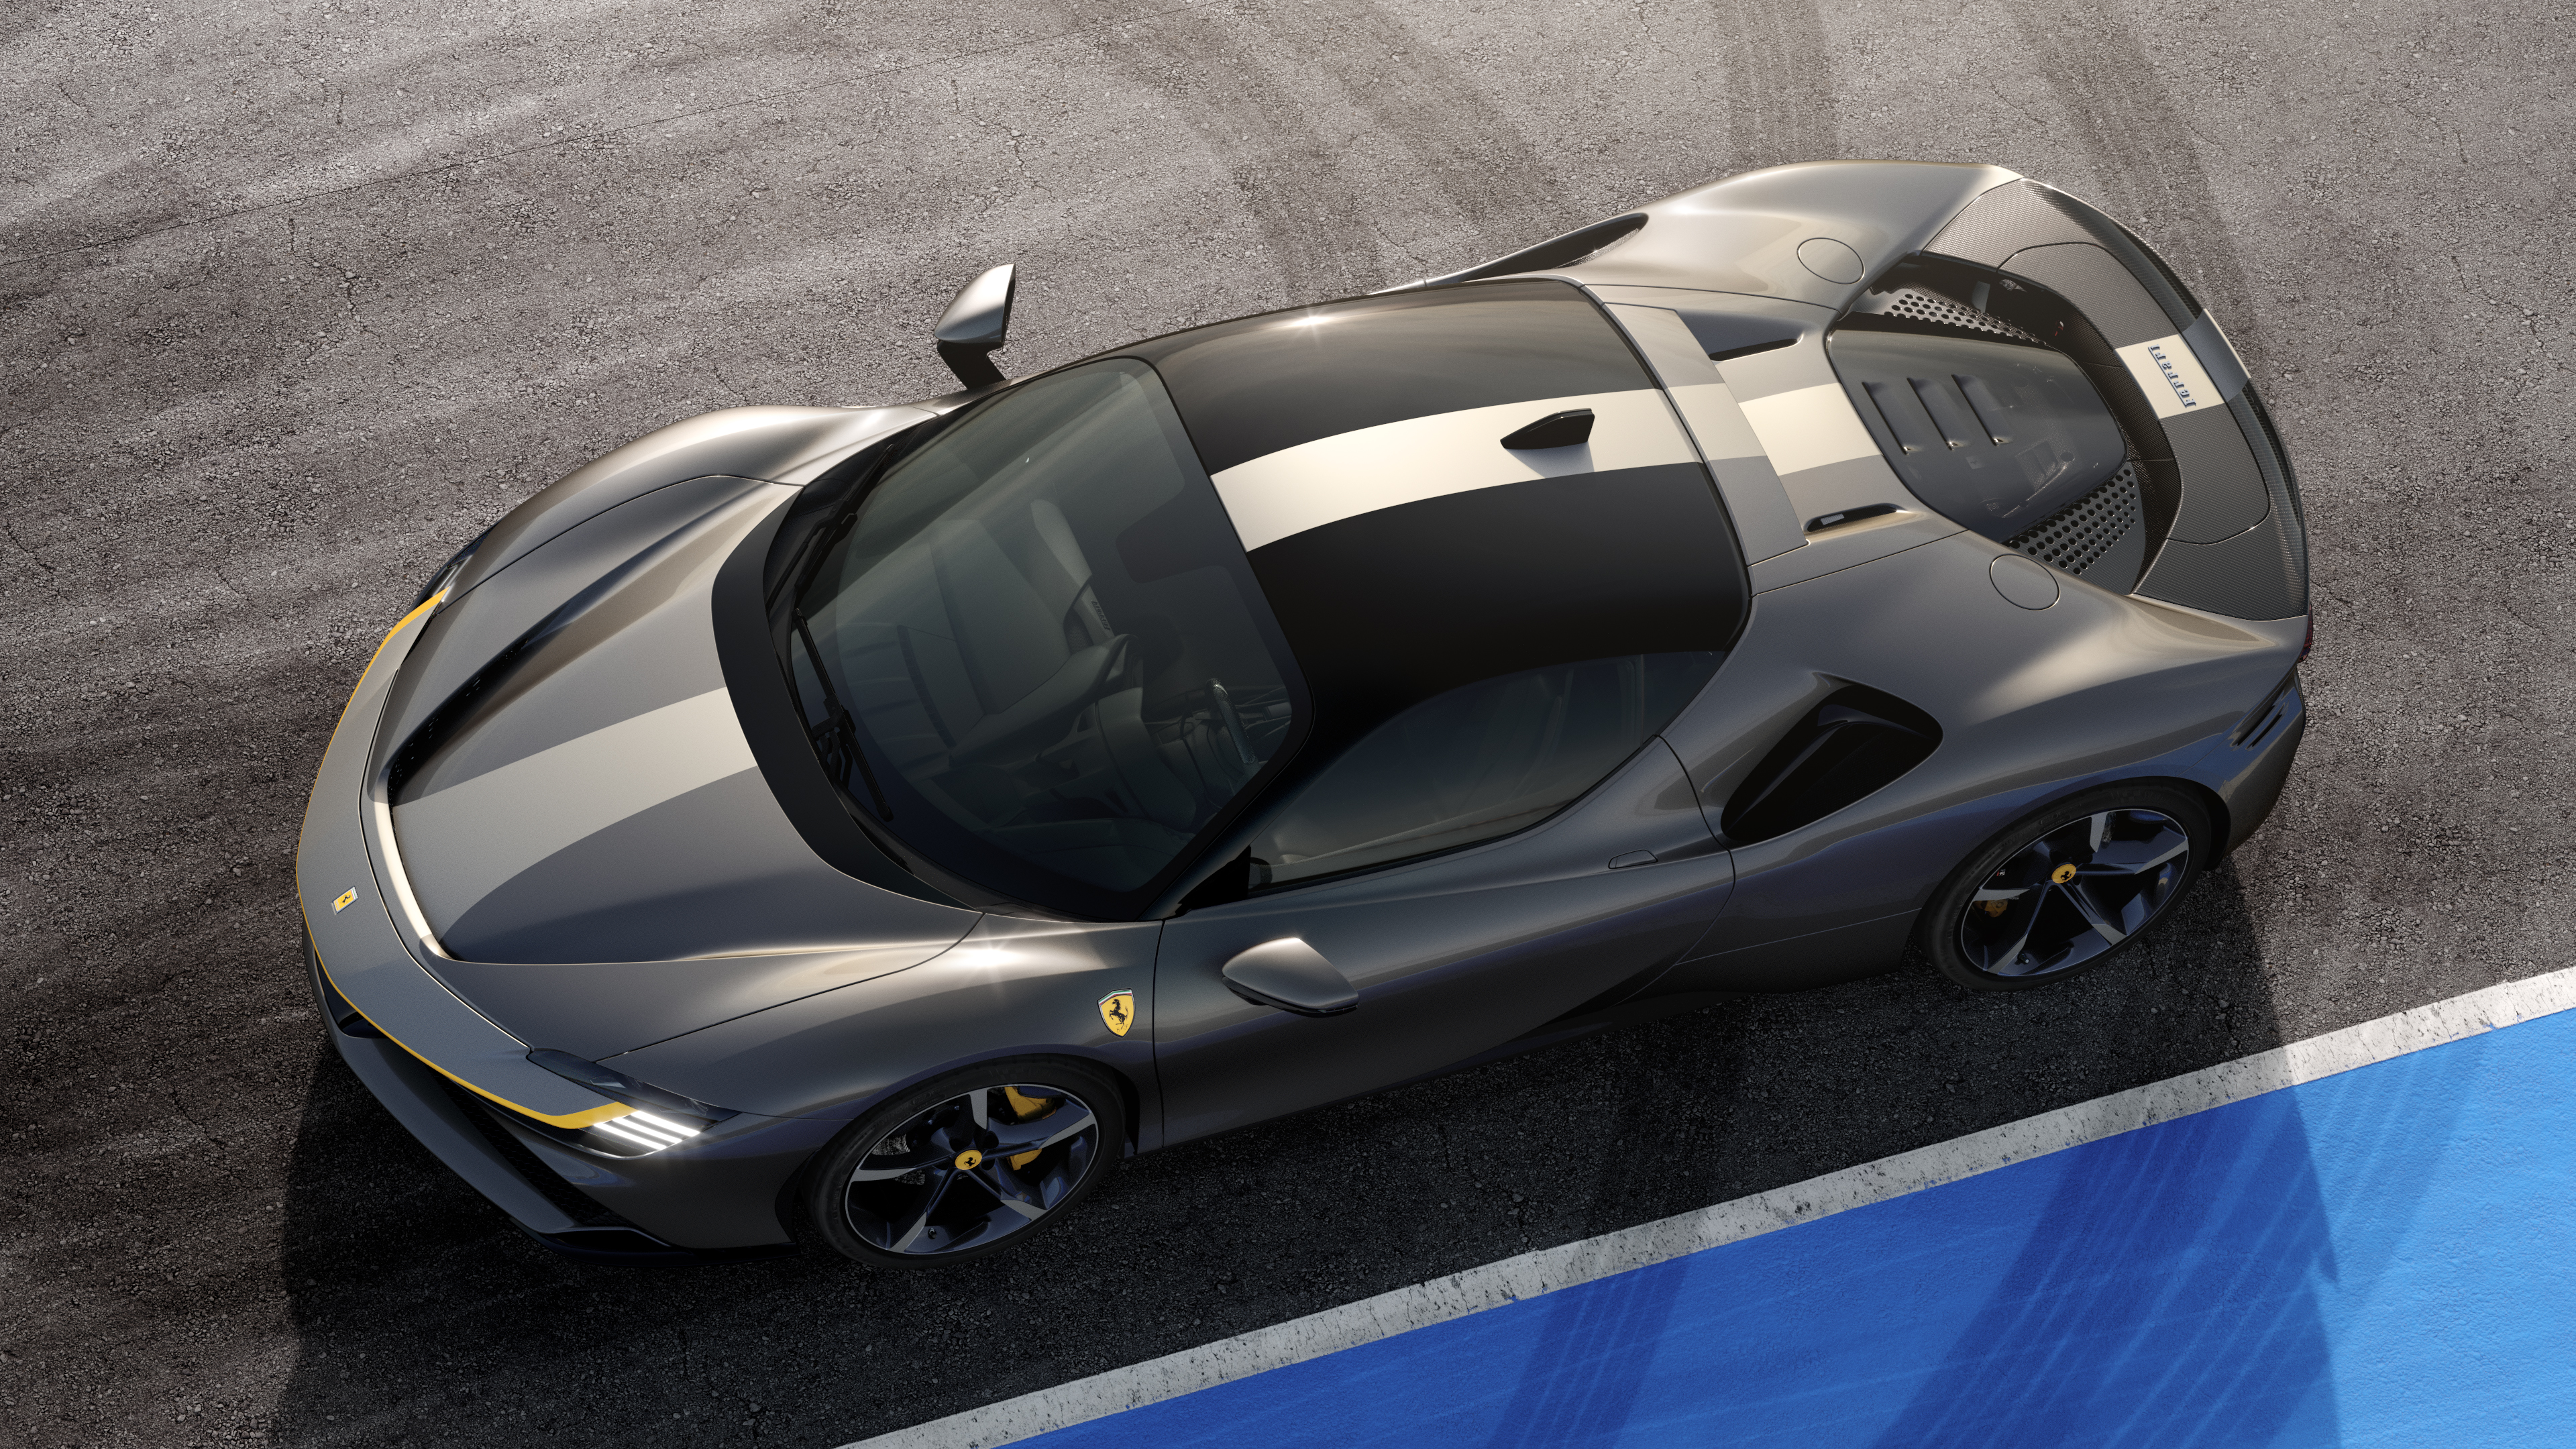 ferrari sf90 stradale assetto fiorano 2019 1560534296 - Ferrari SF90 Stradale Assetto Fiorano 2019 - hd-wallpapers, ferrari wallpapers, ferrari sf90 stradale wallpapers, cars wallpapers, 4k-wallpapers, 2019 cars wallpapers